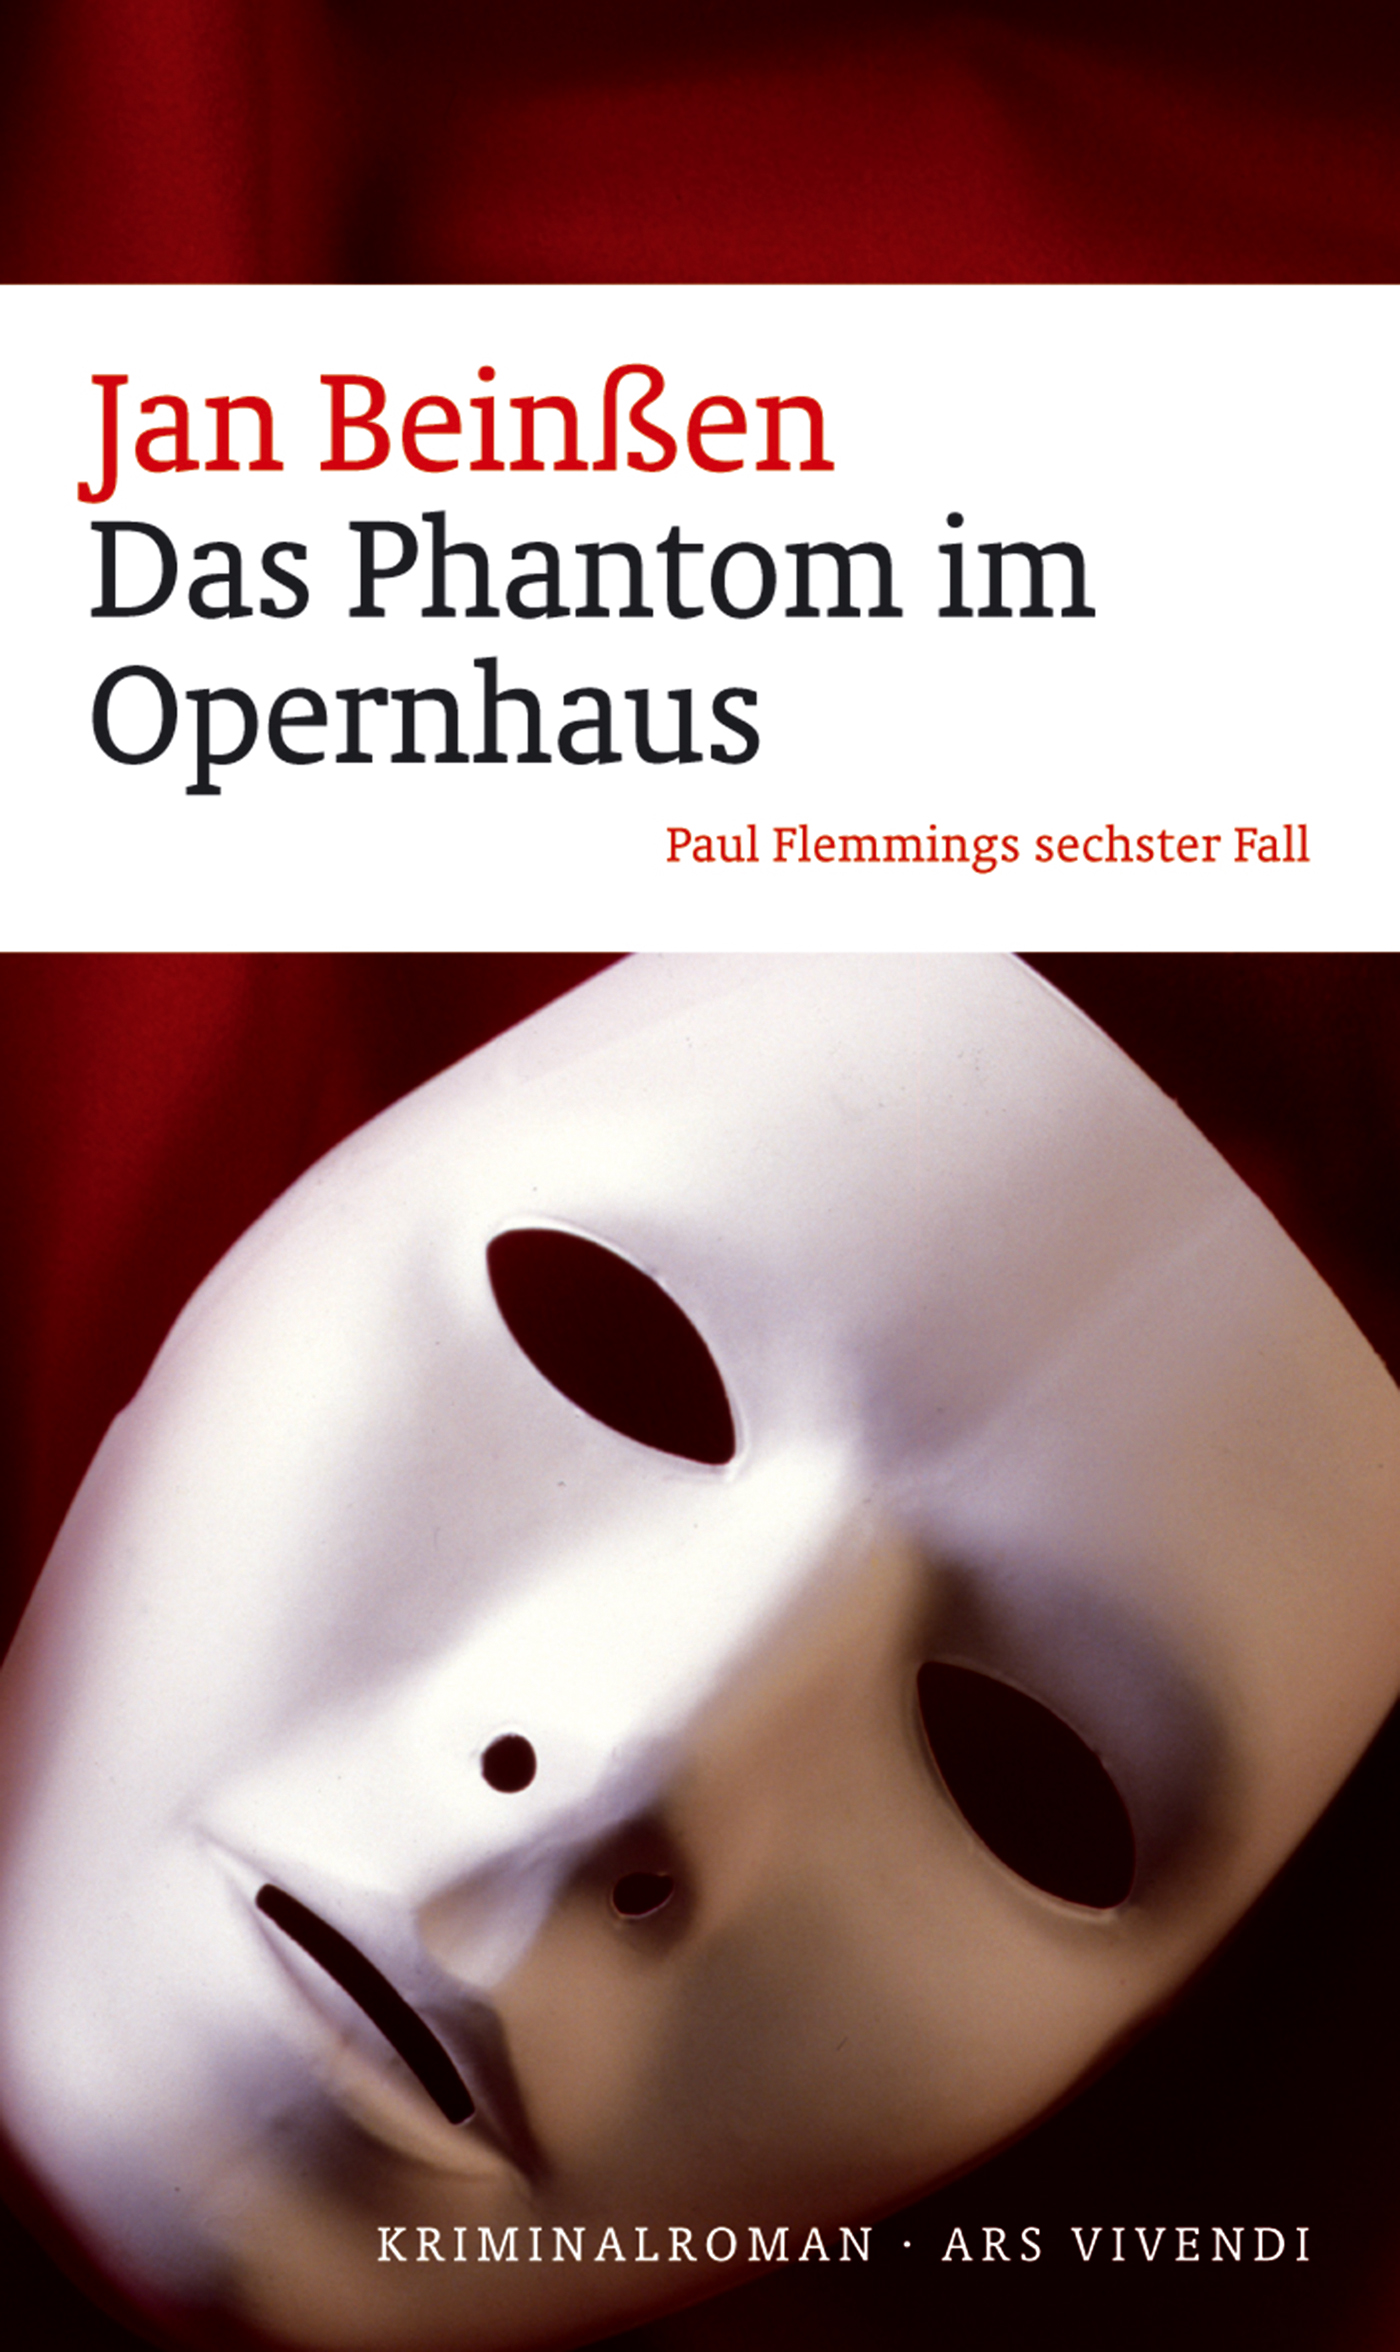 Jan Beinßen Das Phantom im Opernhaus (eBook)